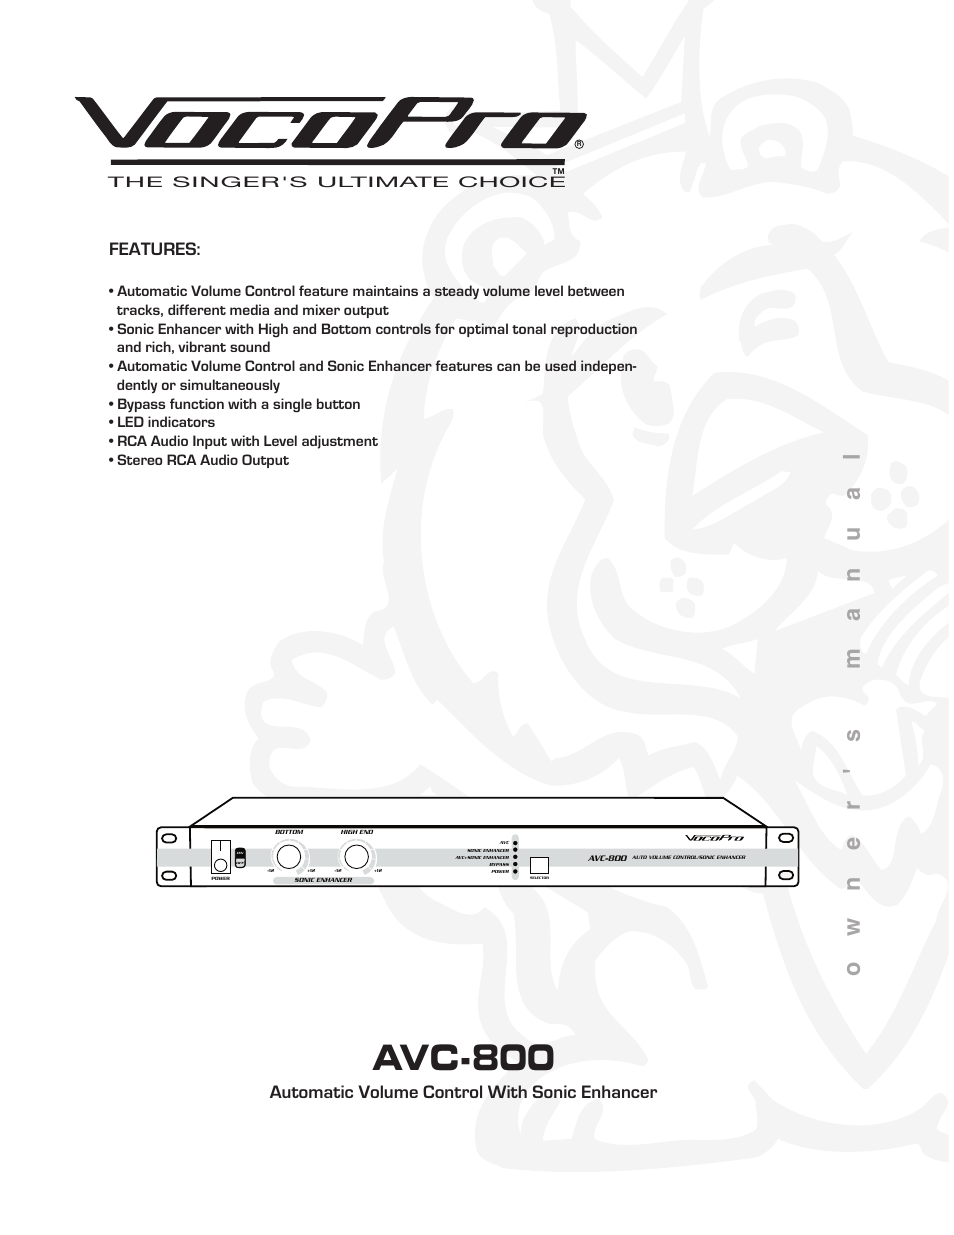 VocoPro AUTOMATIC VOLUME CONTROL AVC-800 User Manual   14 pages